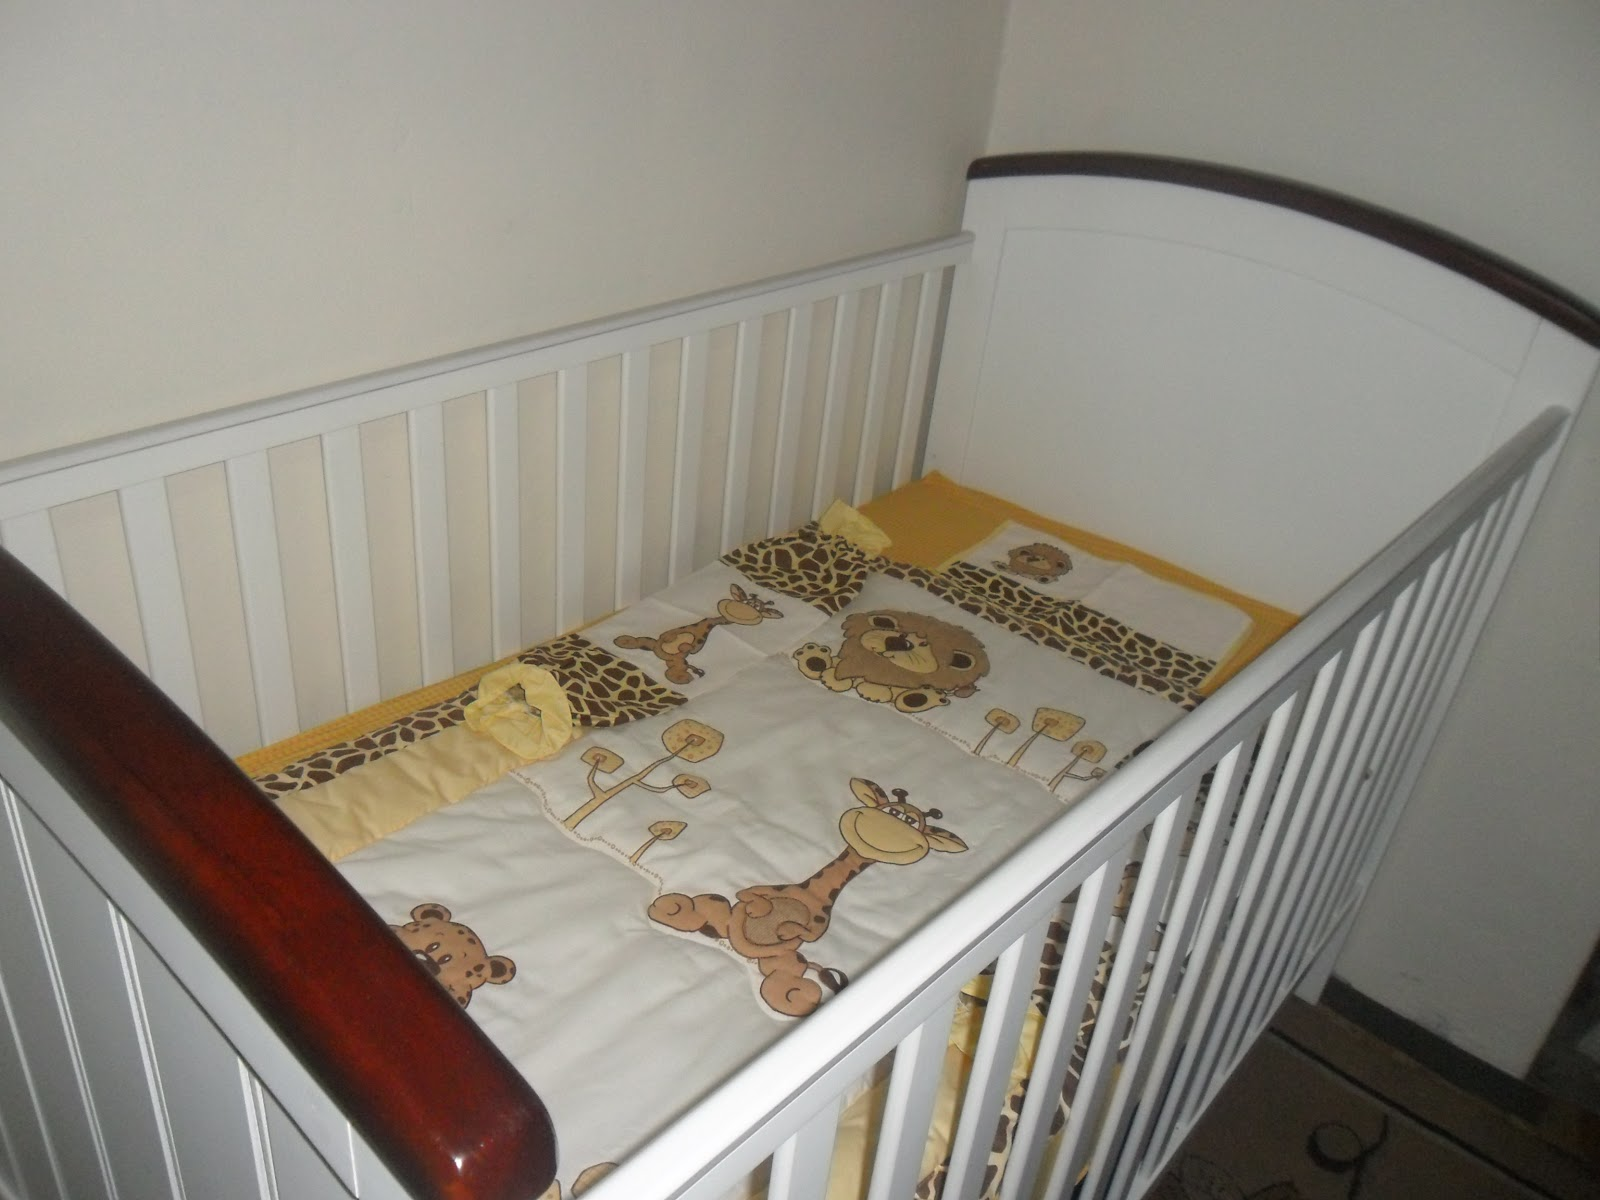 A cuddlebug crib for a couple of cuddle bugs